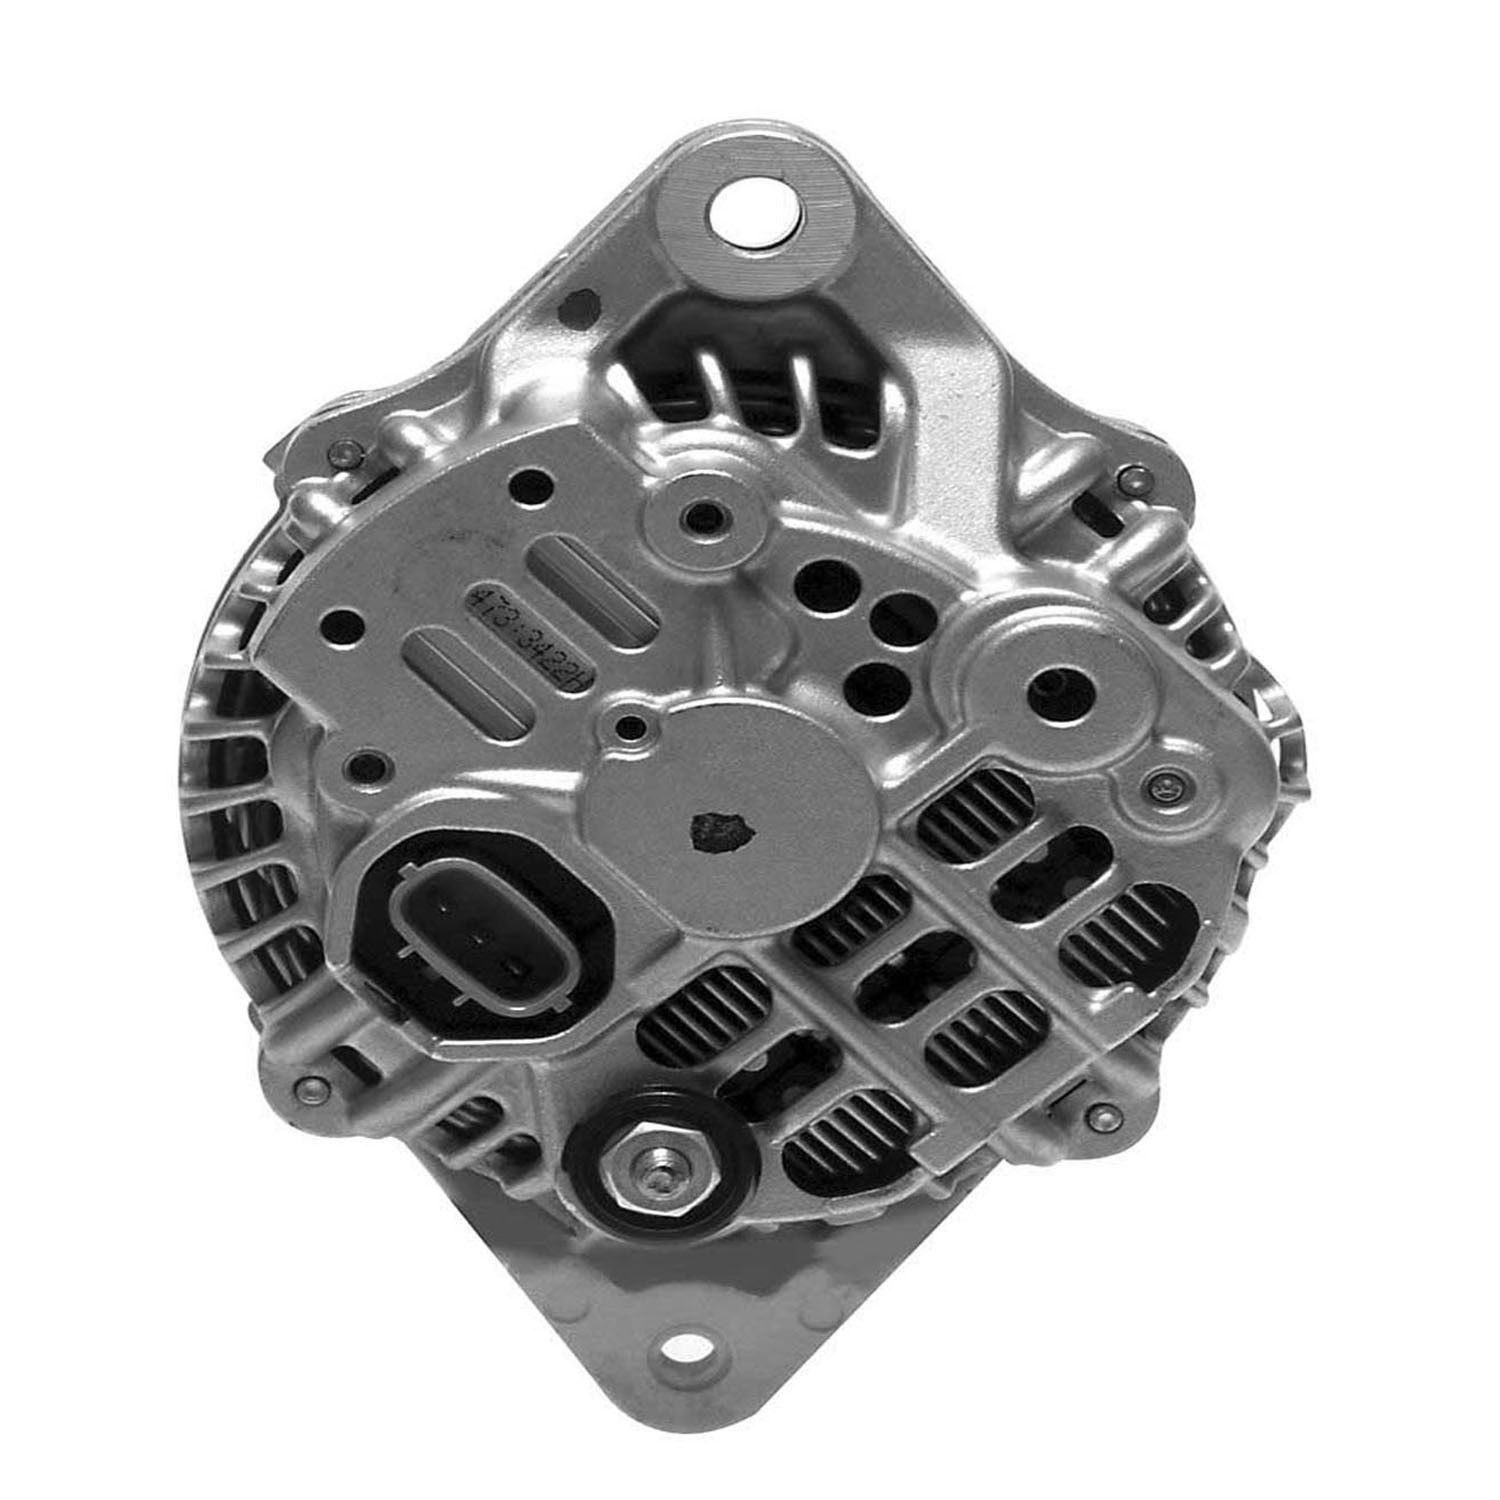 Chevrolet Tracker Alternator Replacement Denso Mpa Mitsubishi Wiring A For 2000 Chevy 1999 4 Cyl 20l 210 4192 All Oe Equivalent